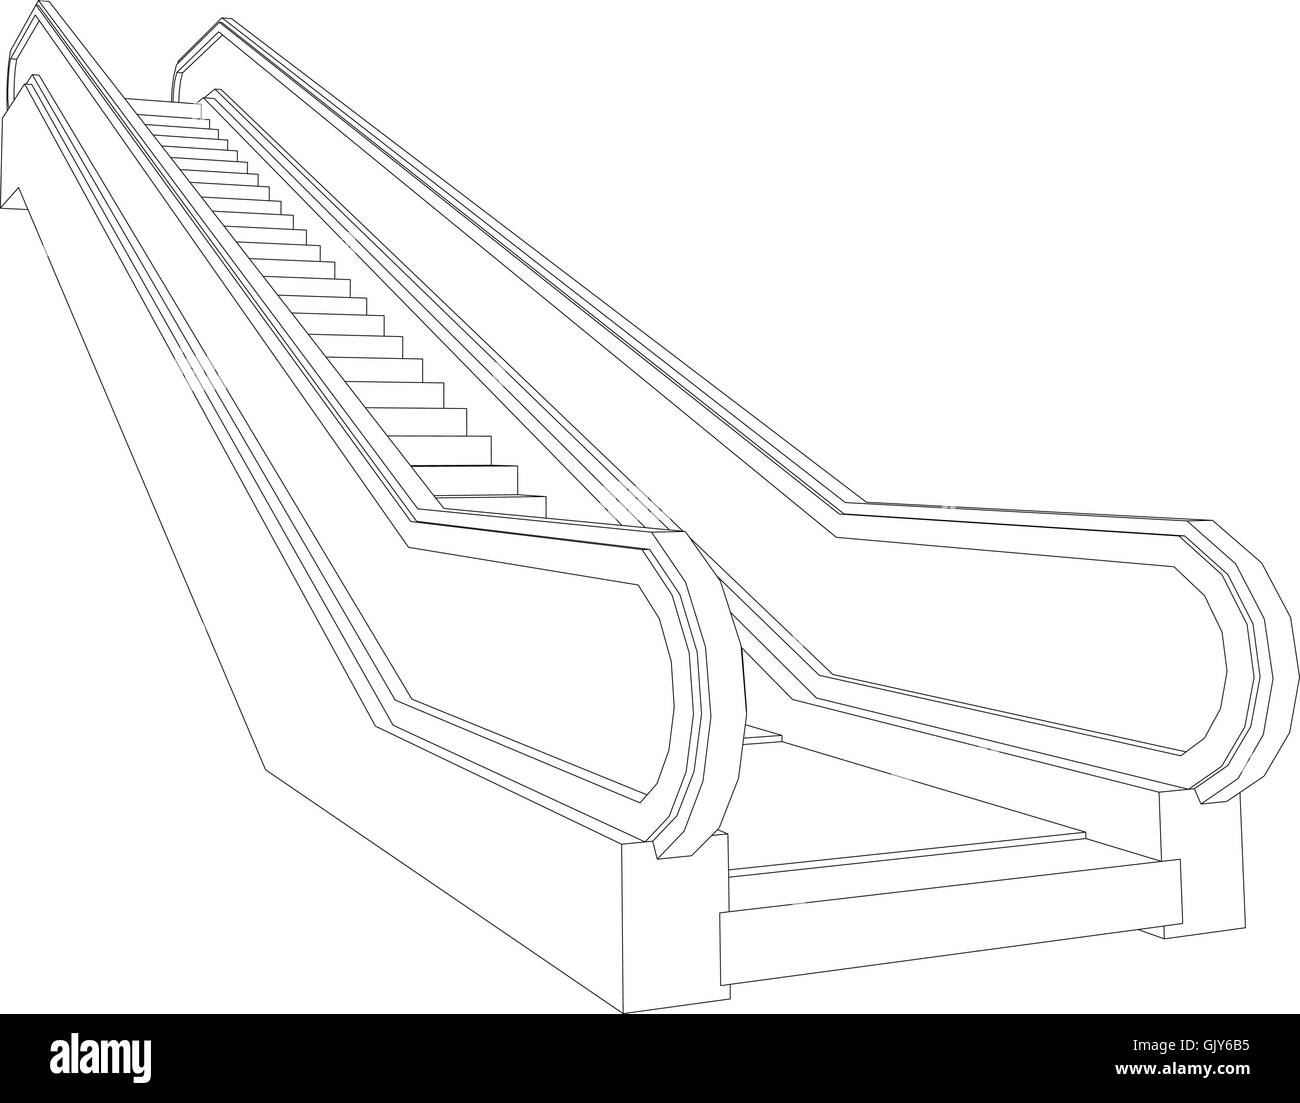 Escalator Cut Out Stock Images Pictures Alamy Schematic Drawing Of Wire Frame Perspective View Vector Illustration Image